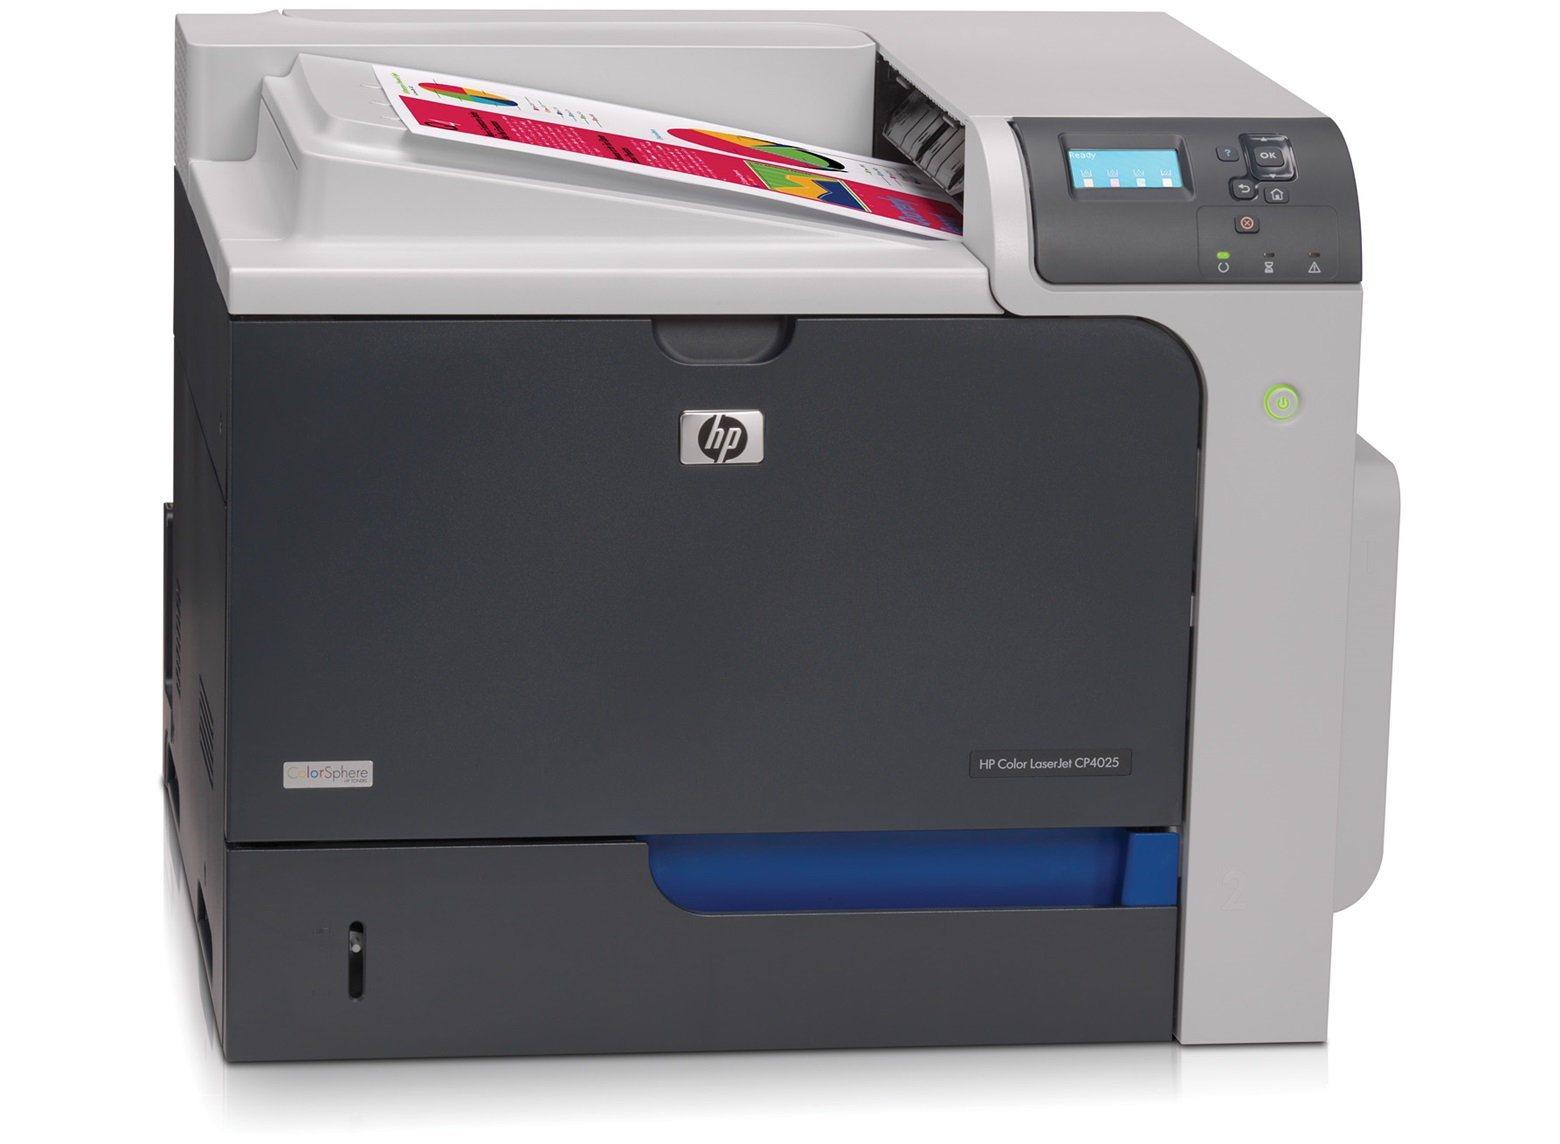 HP Color LaserJet Enterprise CP 4025n